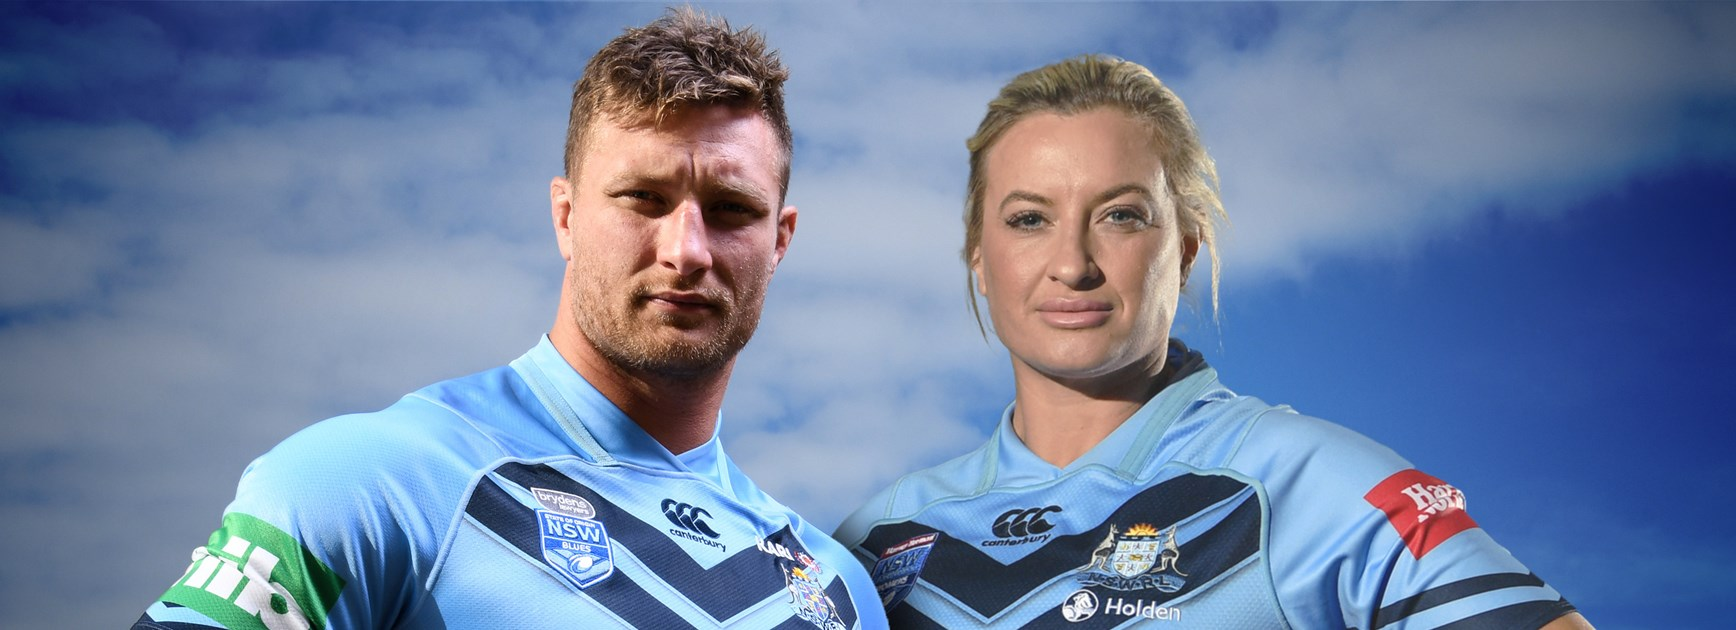 Tariq Sims creating history in Ruan's footsteps